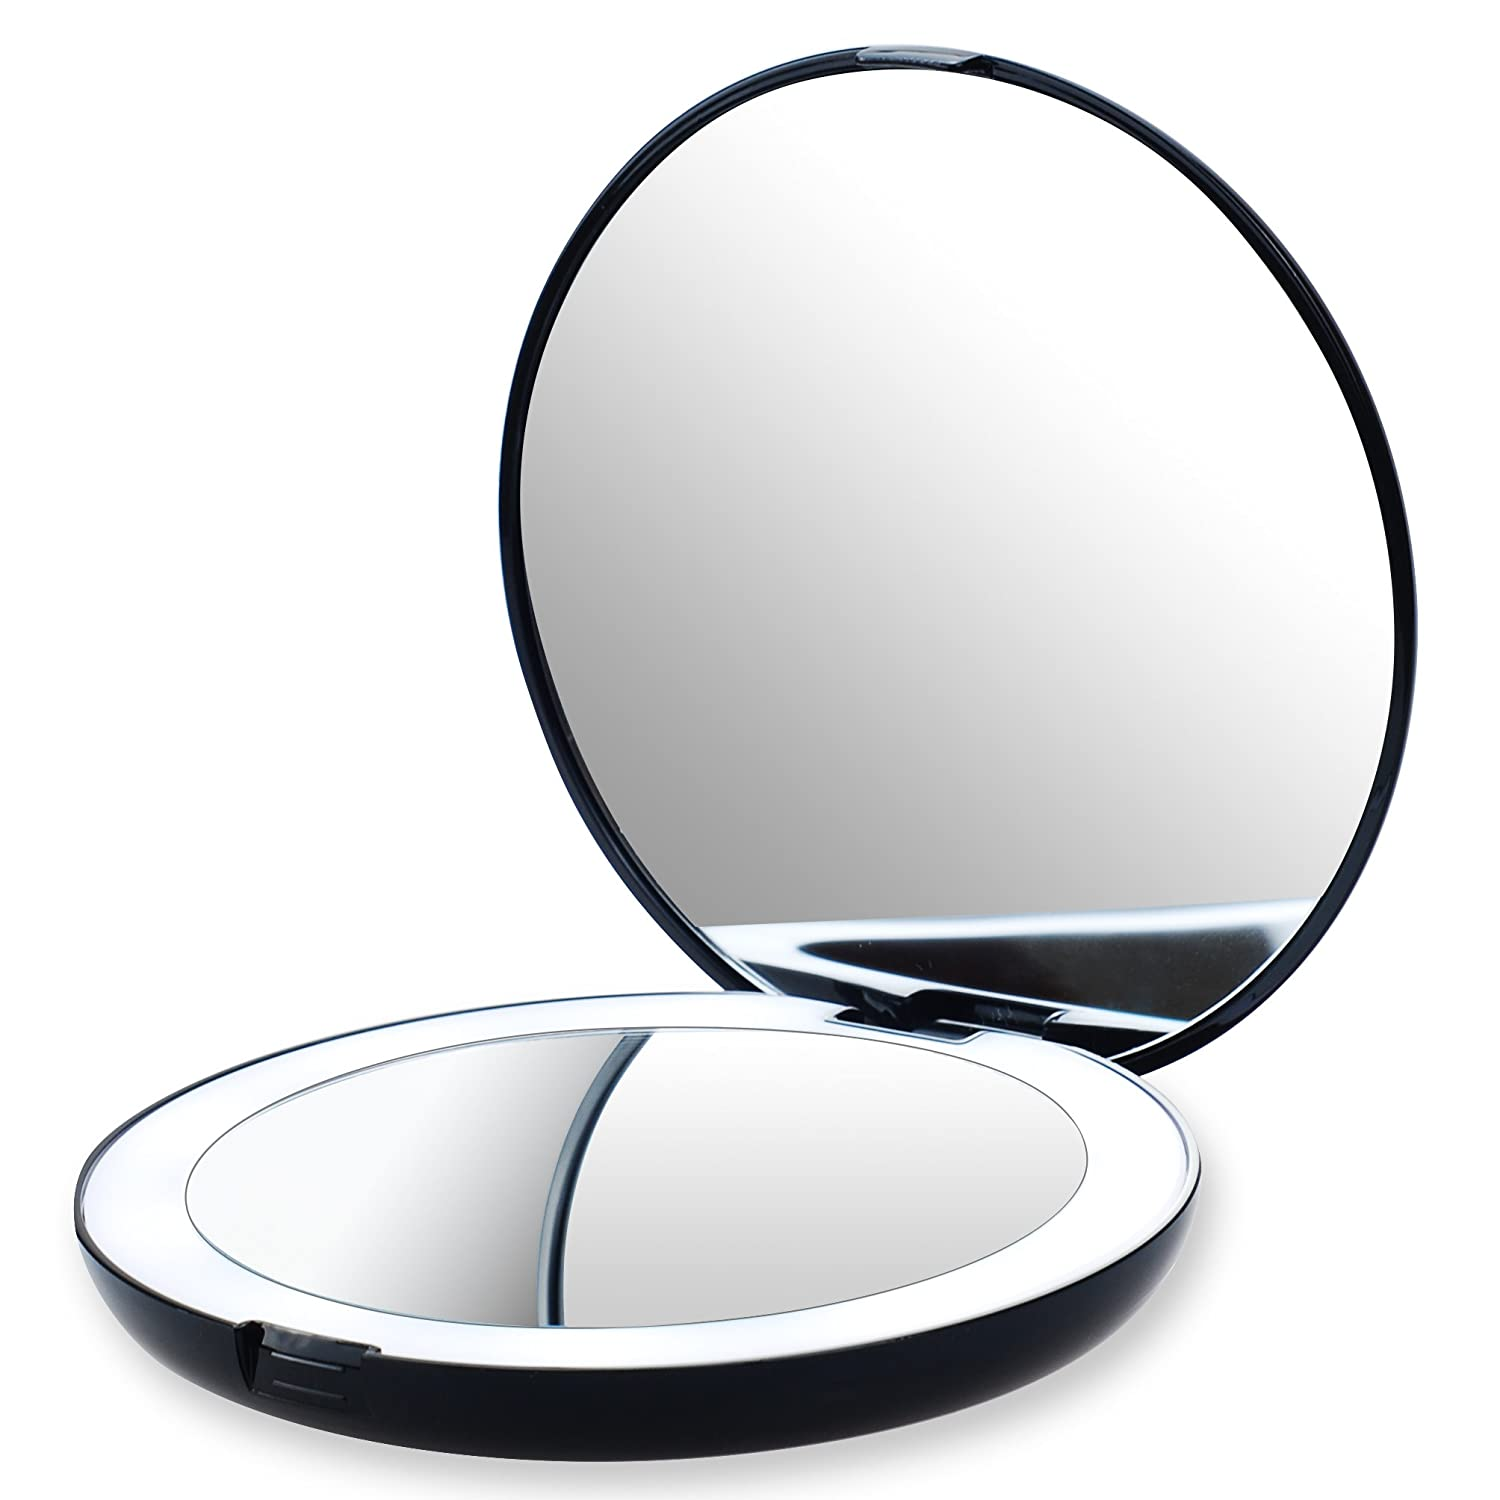 VrHere Lighted Max 51% OFF Travel Makeup Mirror Comp - Magnification At the price 1x 10x